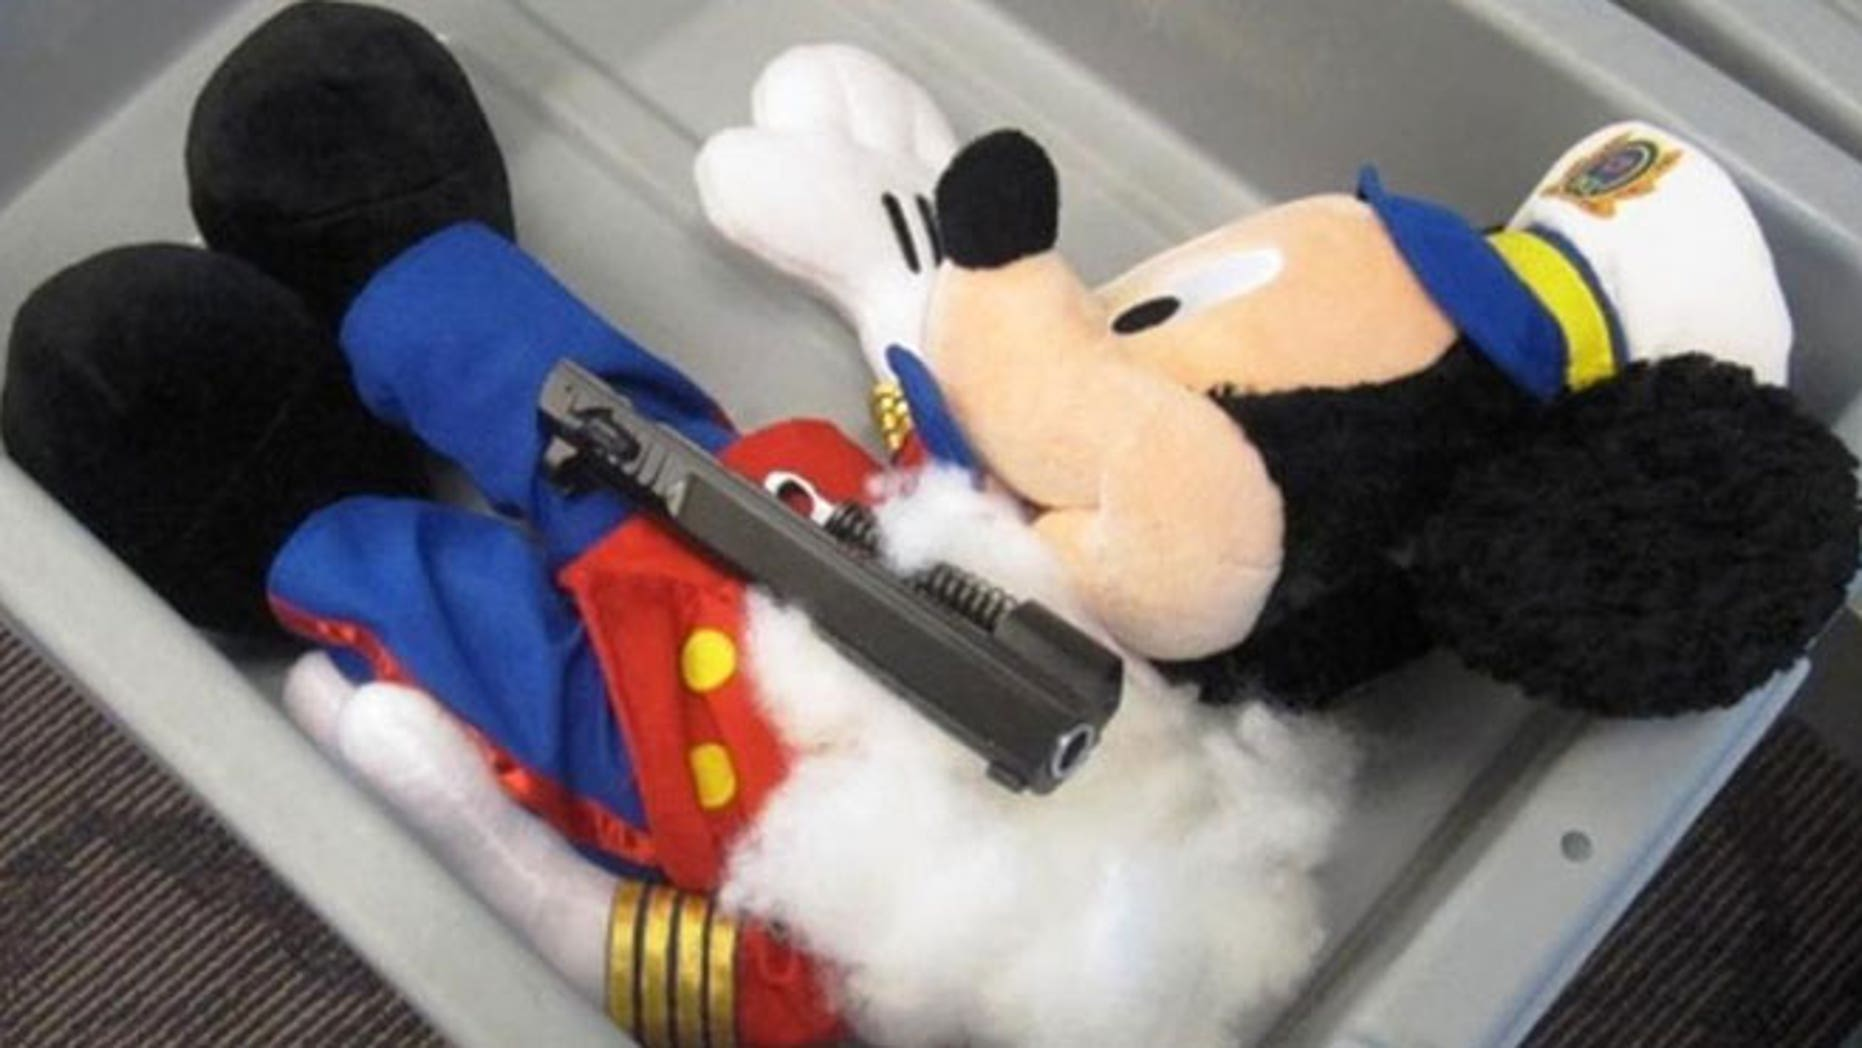 This undated photo provided by the federal Transportation Security Administration shows pistol parts hidden in a stuffed animal found by TSA officials at T.F. Green Airport in Warwick, R.I., Monday May 7, 2012.